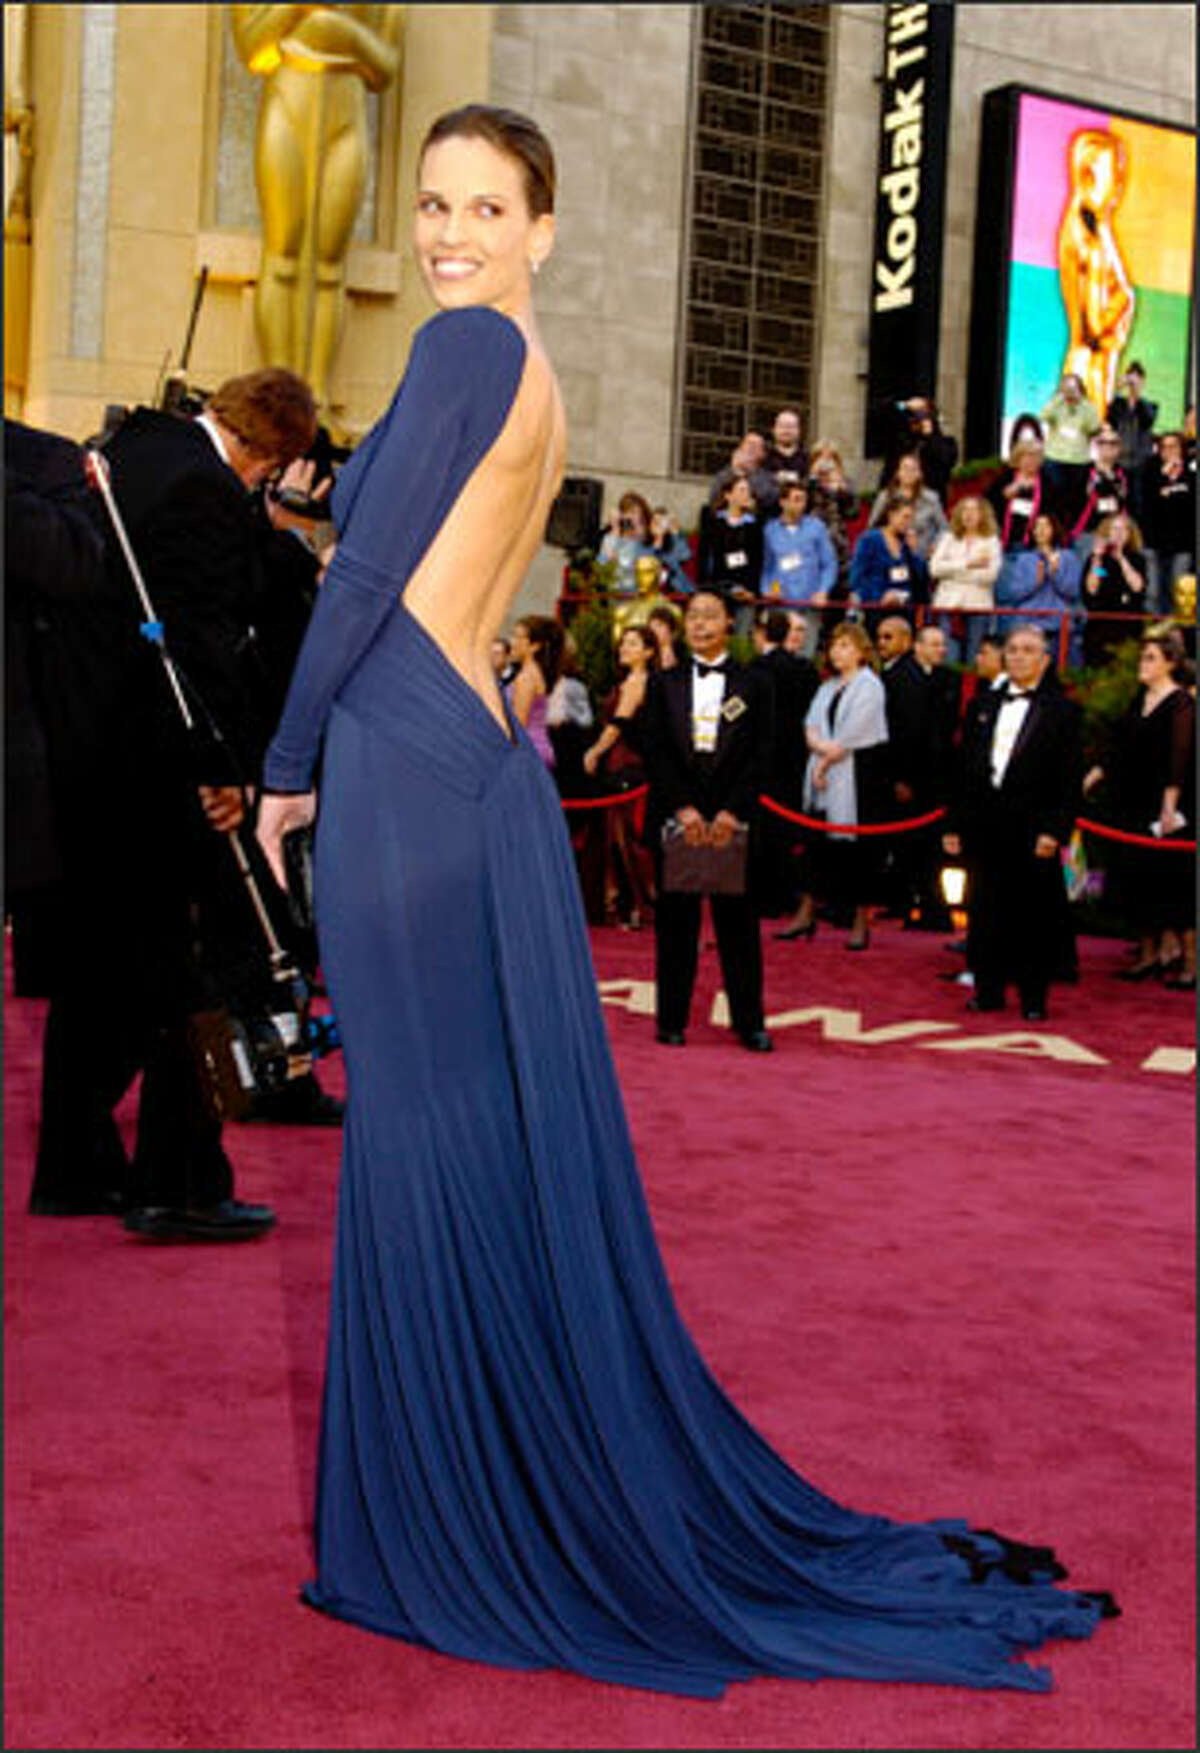 Hilary Swank arrives for the 77th Academy Awards in Los Angeles. Swank won the Oscar for best actress in a leading role for her work in